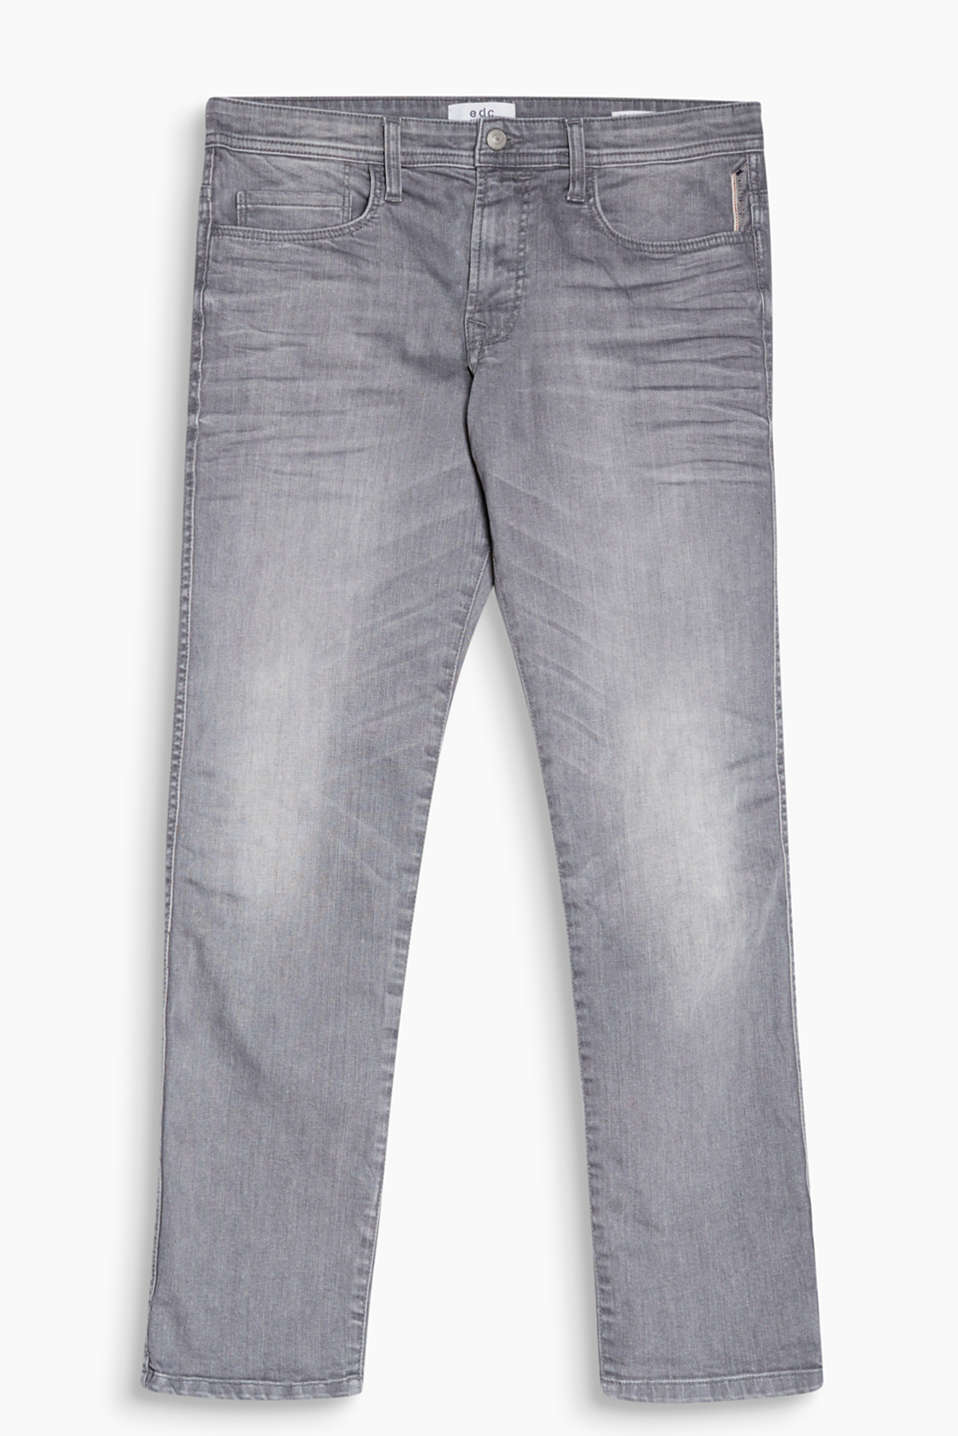 Alsidige, basic denimbukser i bomuld/stretch